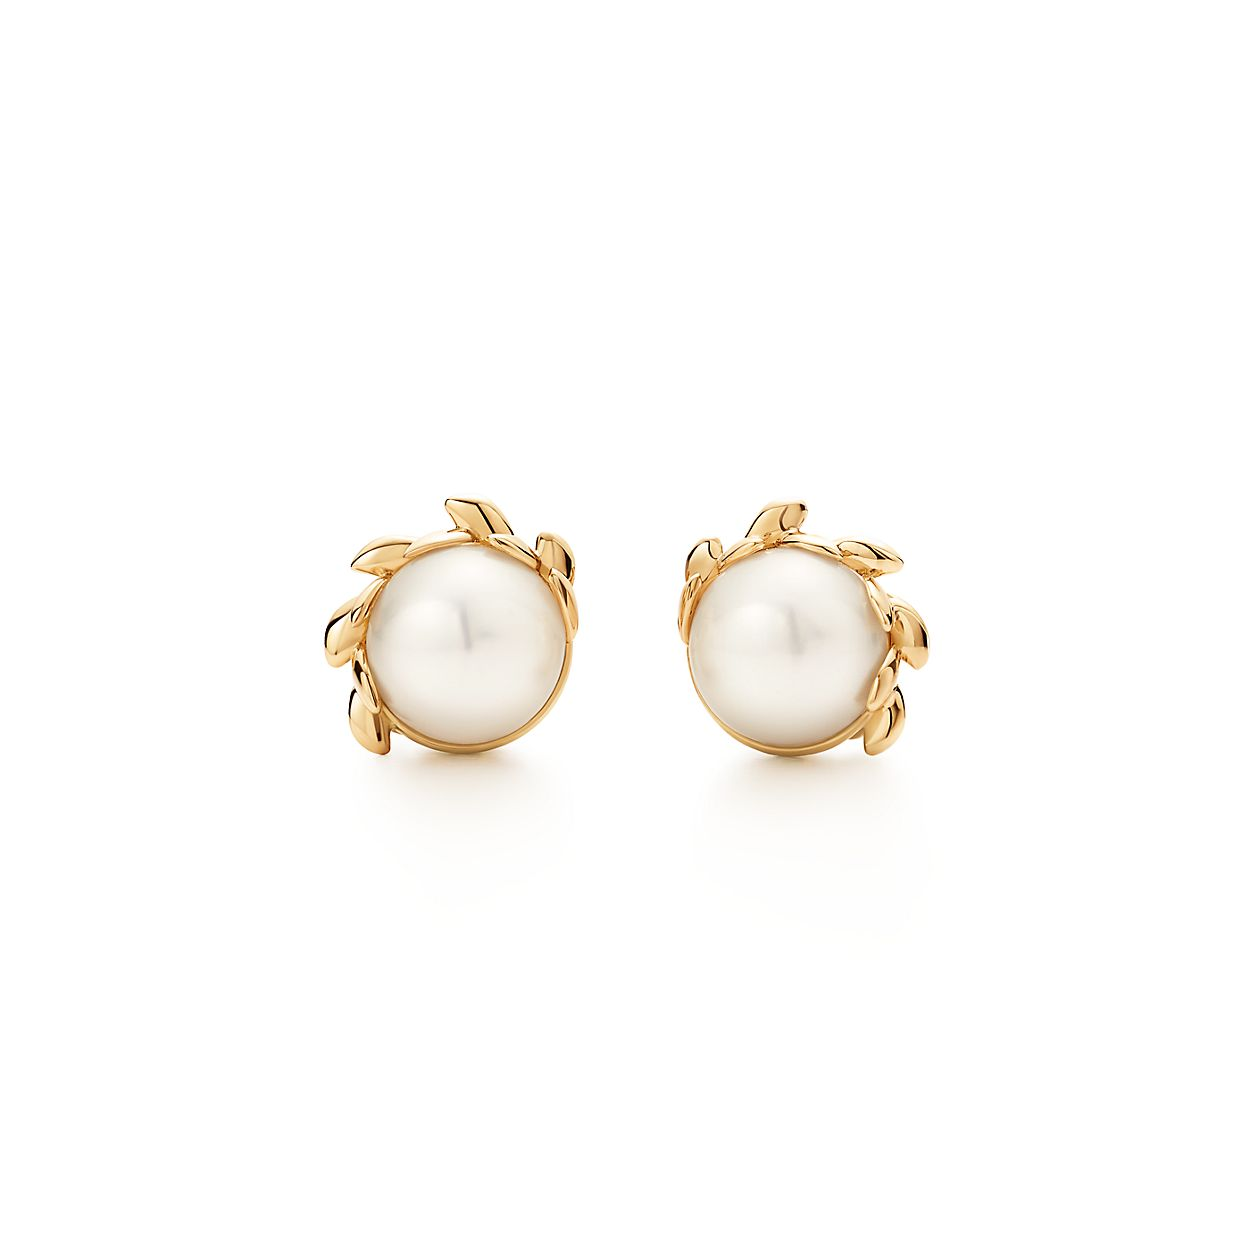 Paloma Pico Olive Leaf Br Pearl Earrings